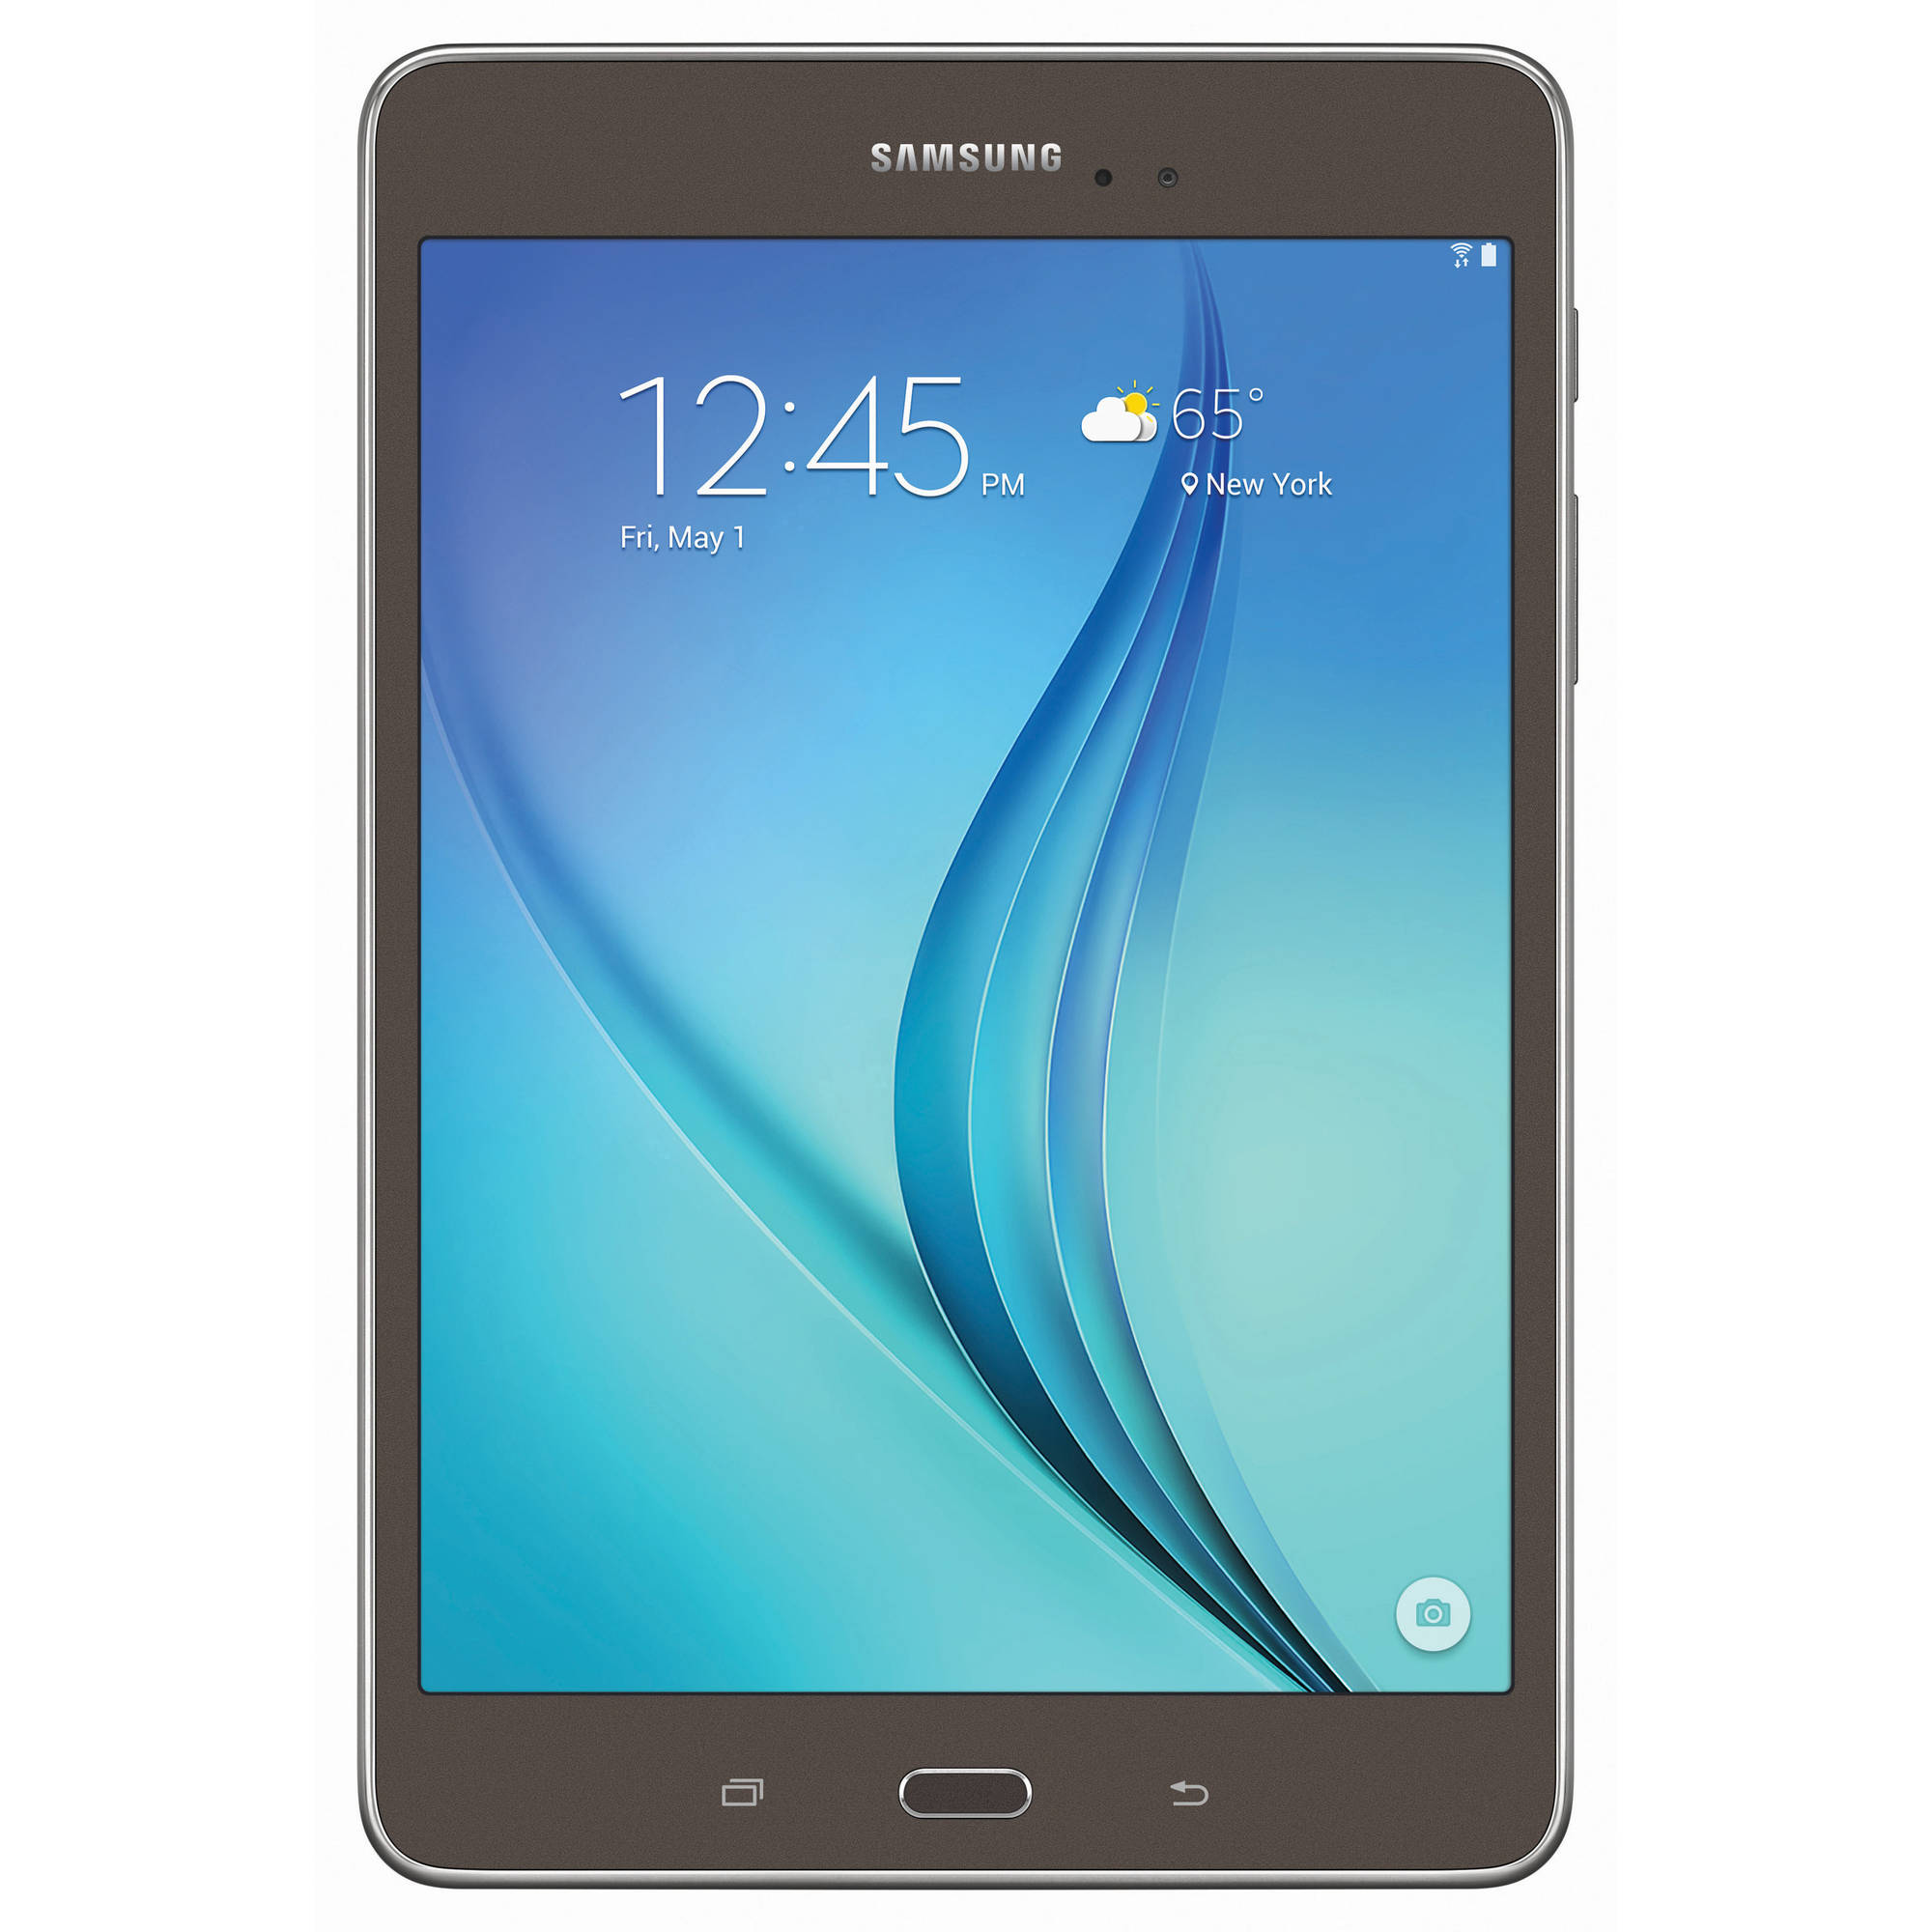 "Samsung Galaxy Tab A 8"" Tablet 16GB, Smoky Titanium Refurbished"